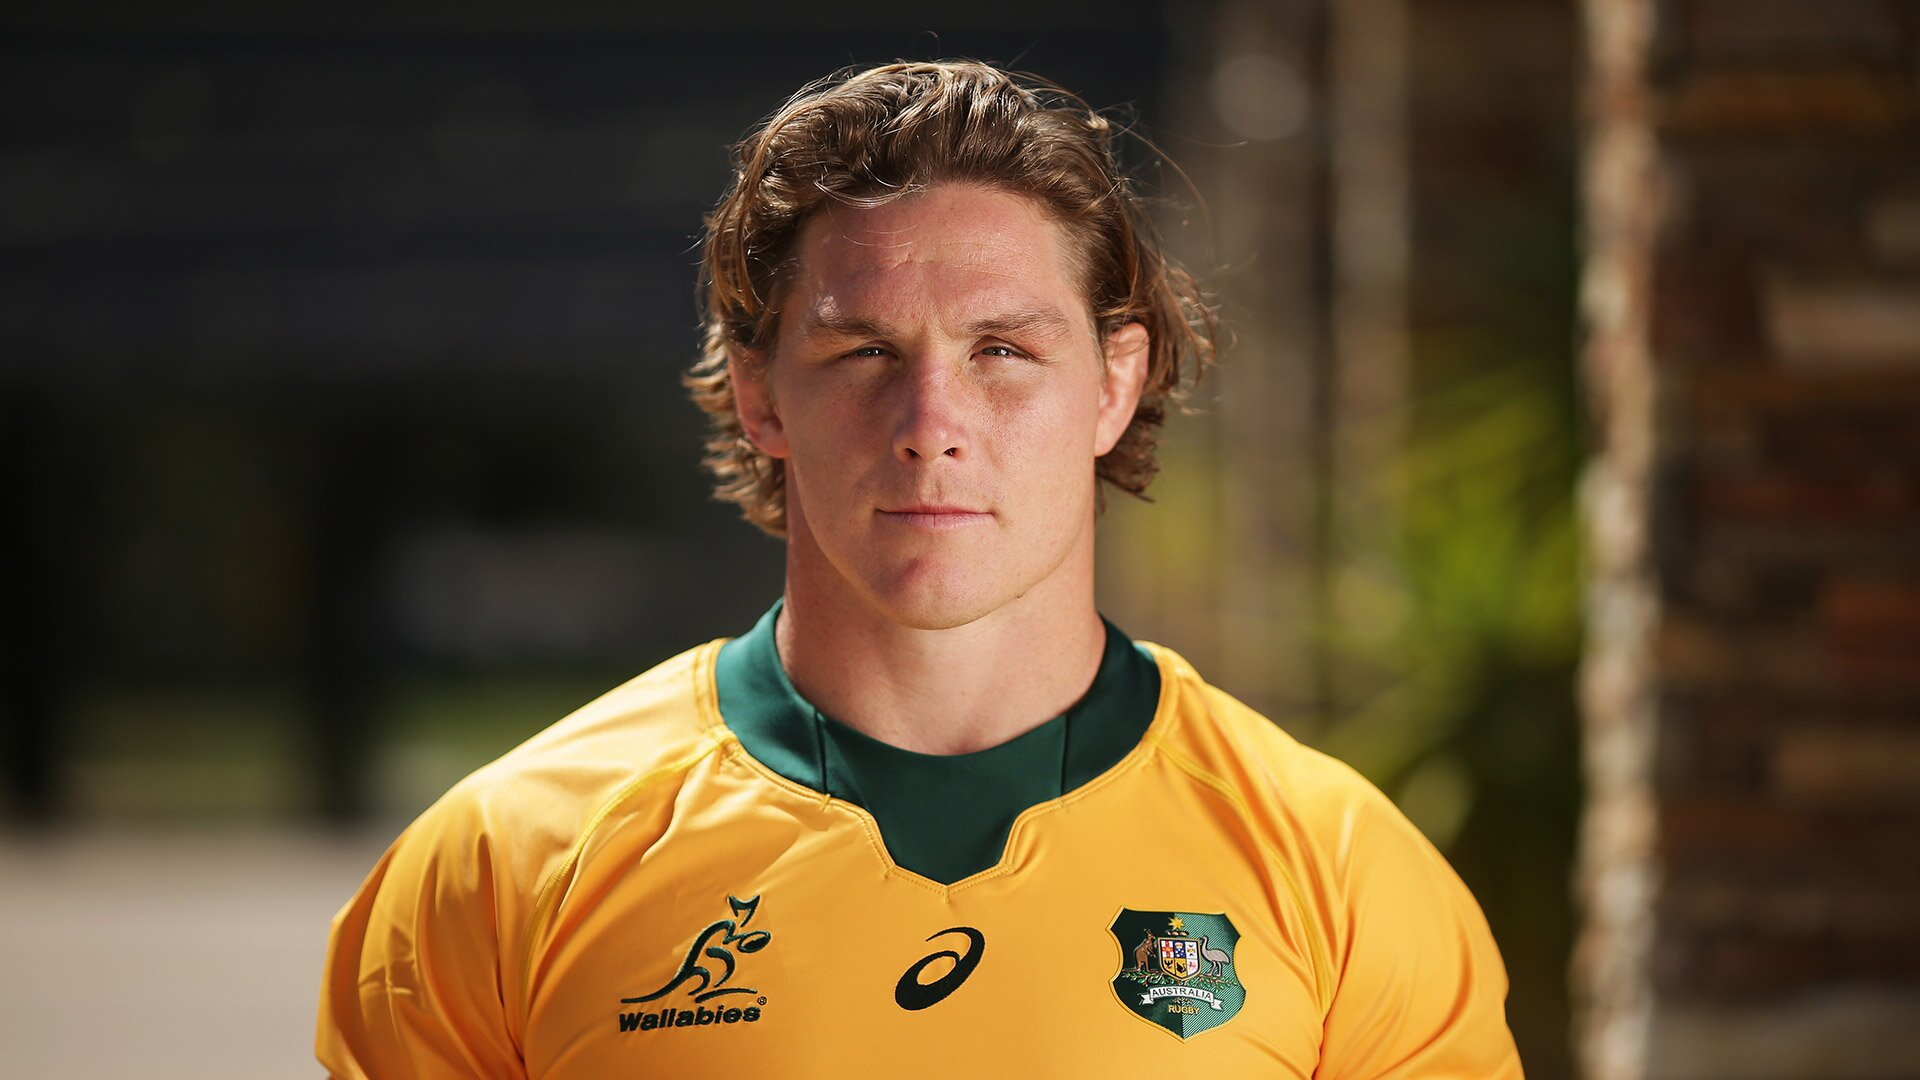 'Got to get our s*** together': How Wallabies captain Michael Hooper plans to celebrate 100th test with win over All Blacks